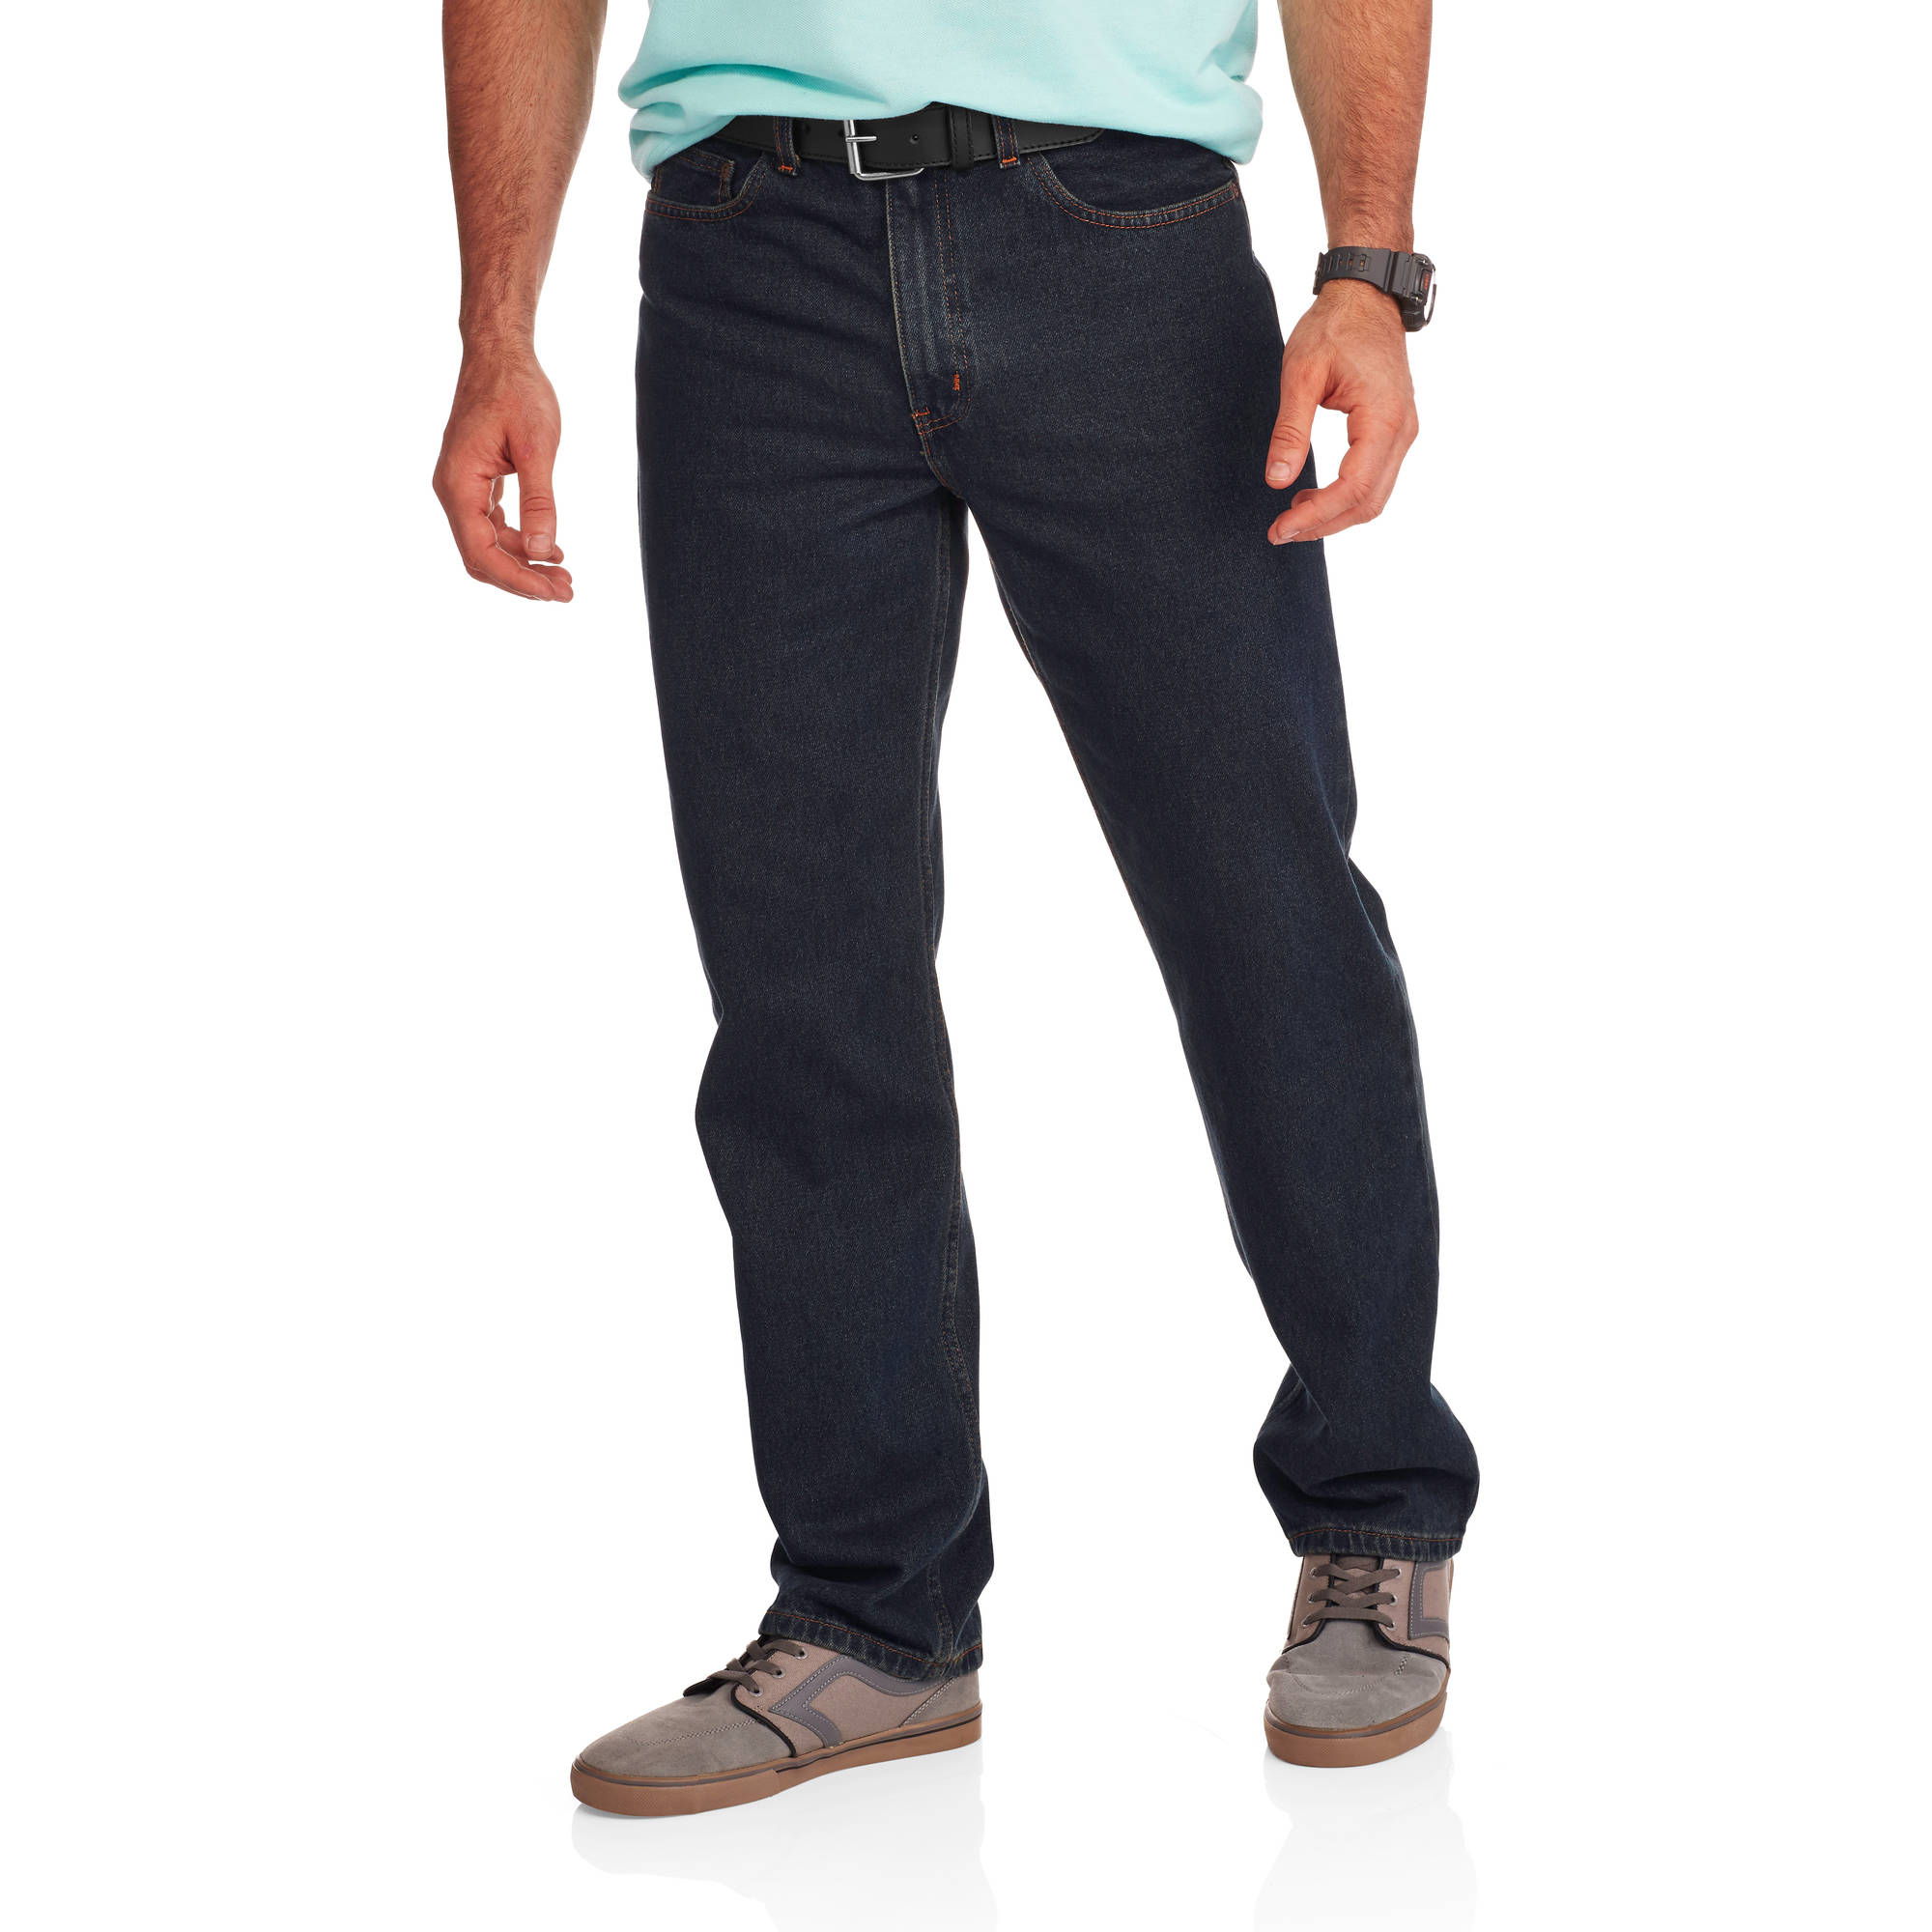 Faded Glory - Big Men's Relaxed Fit Jeans